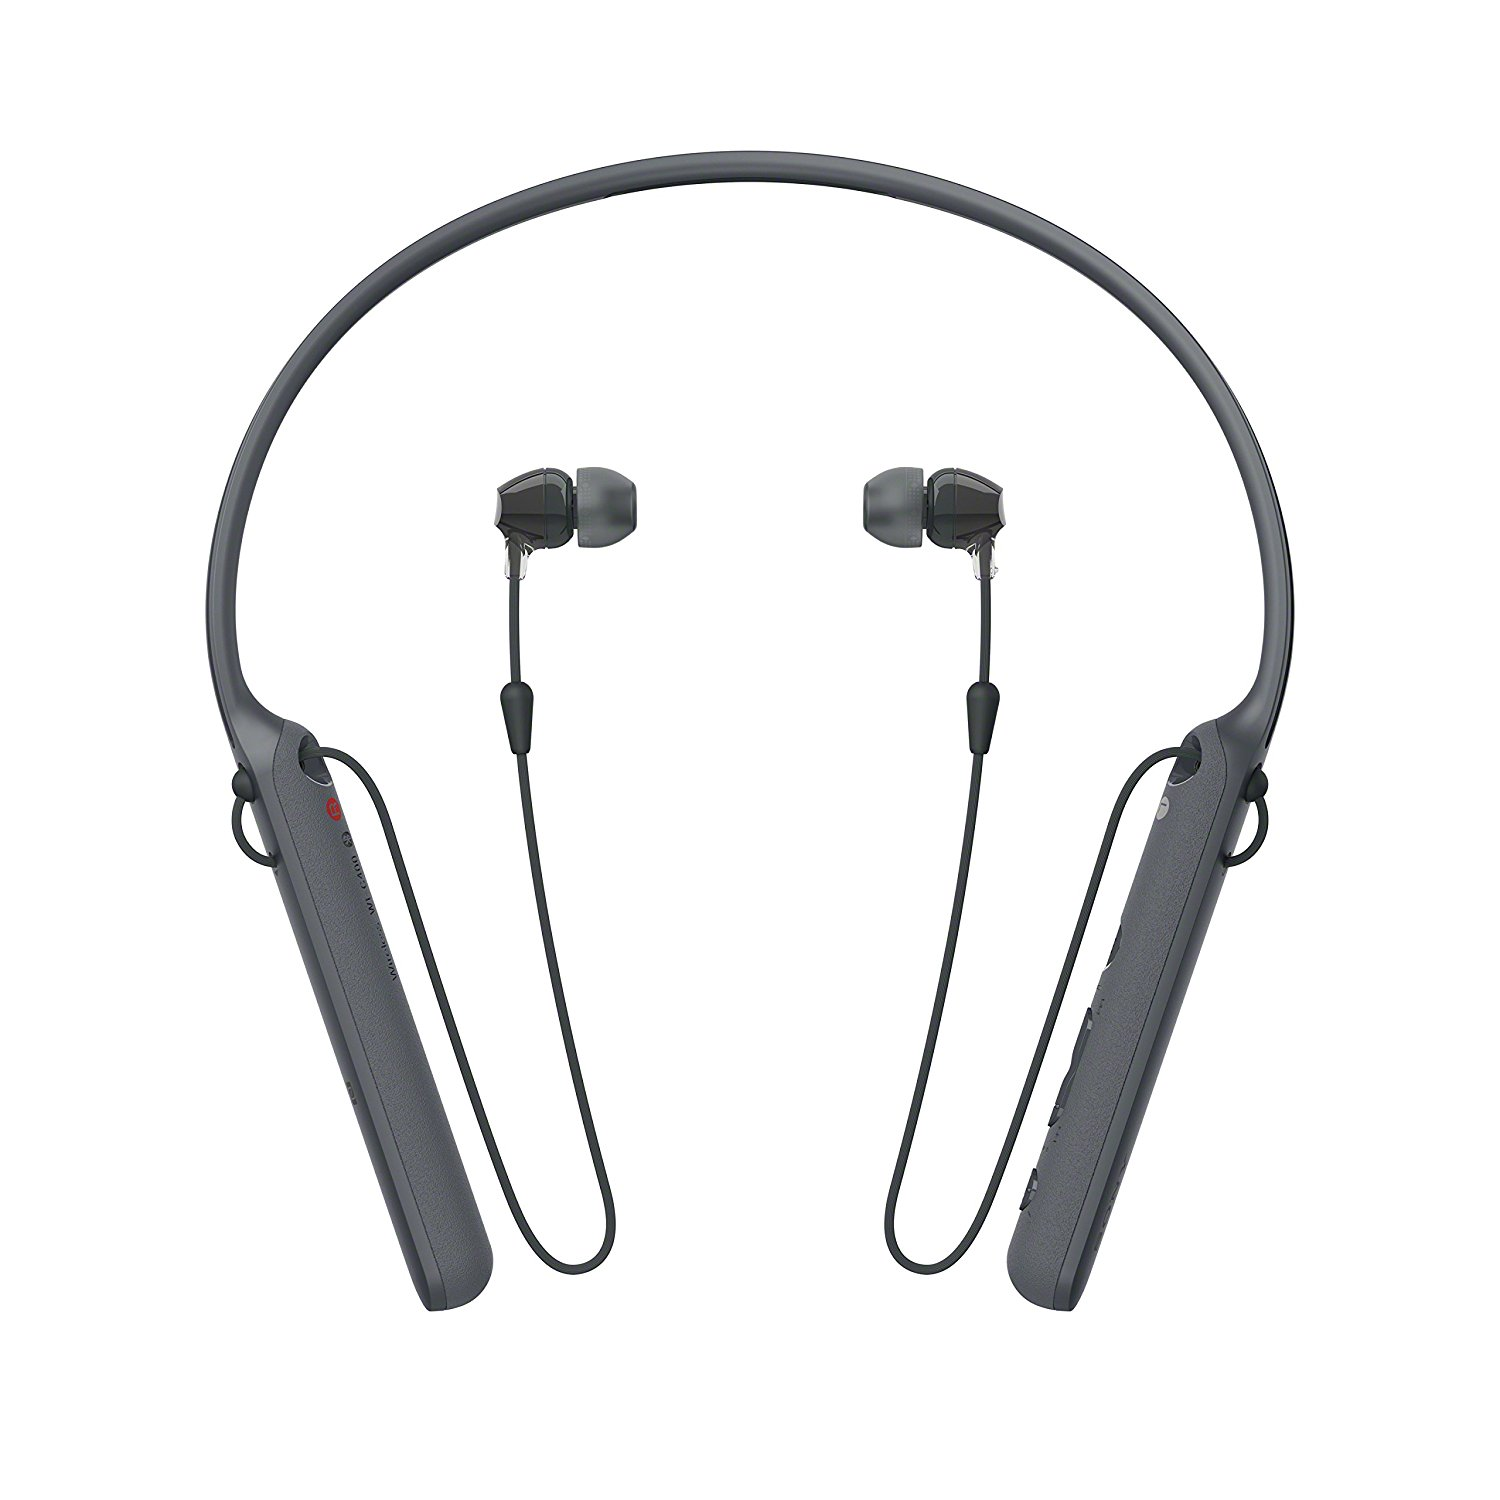 10 Most Comfortable Earbuds Of 2018 3d Insider Headphone Wire Diagram Additionally Iphone Charger Cable Cord As Well Sony C400